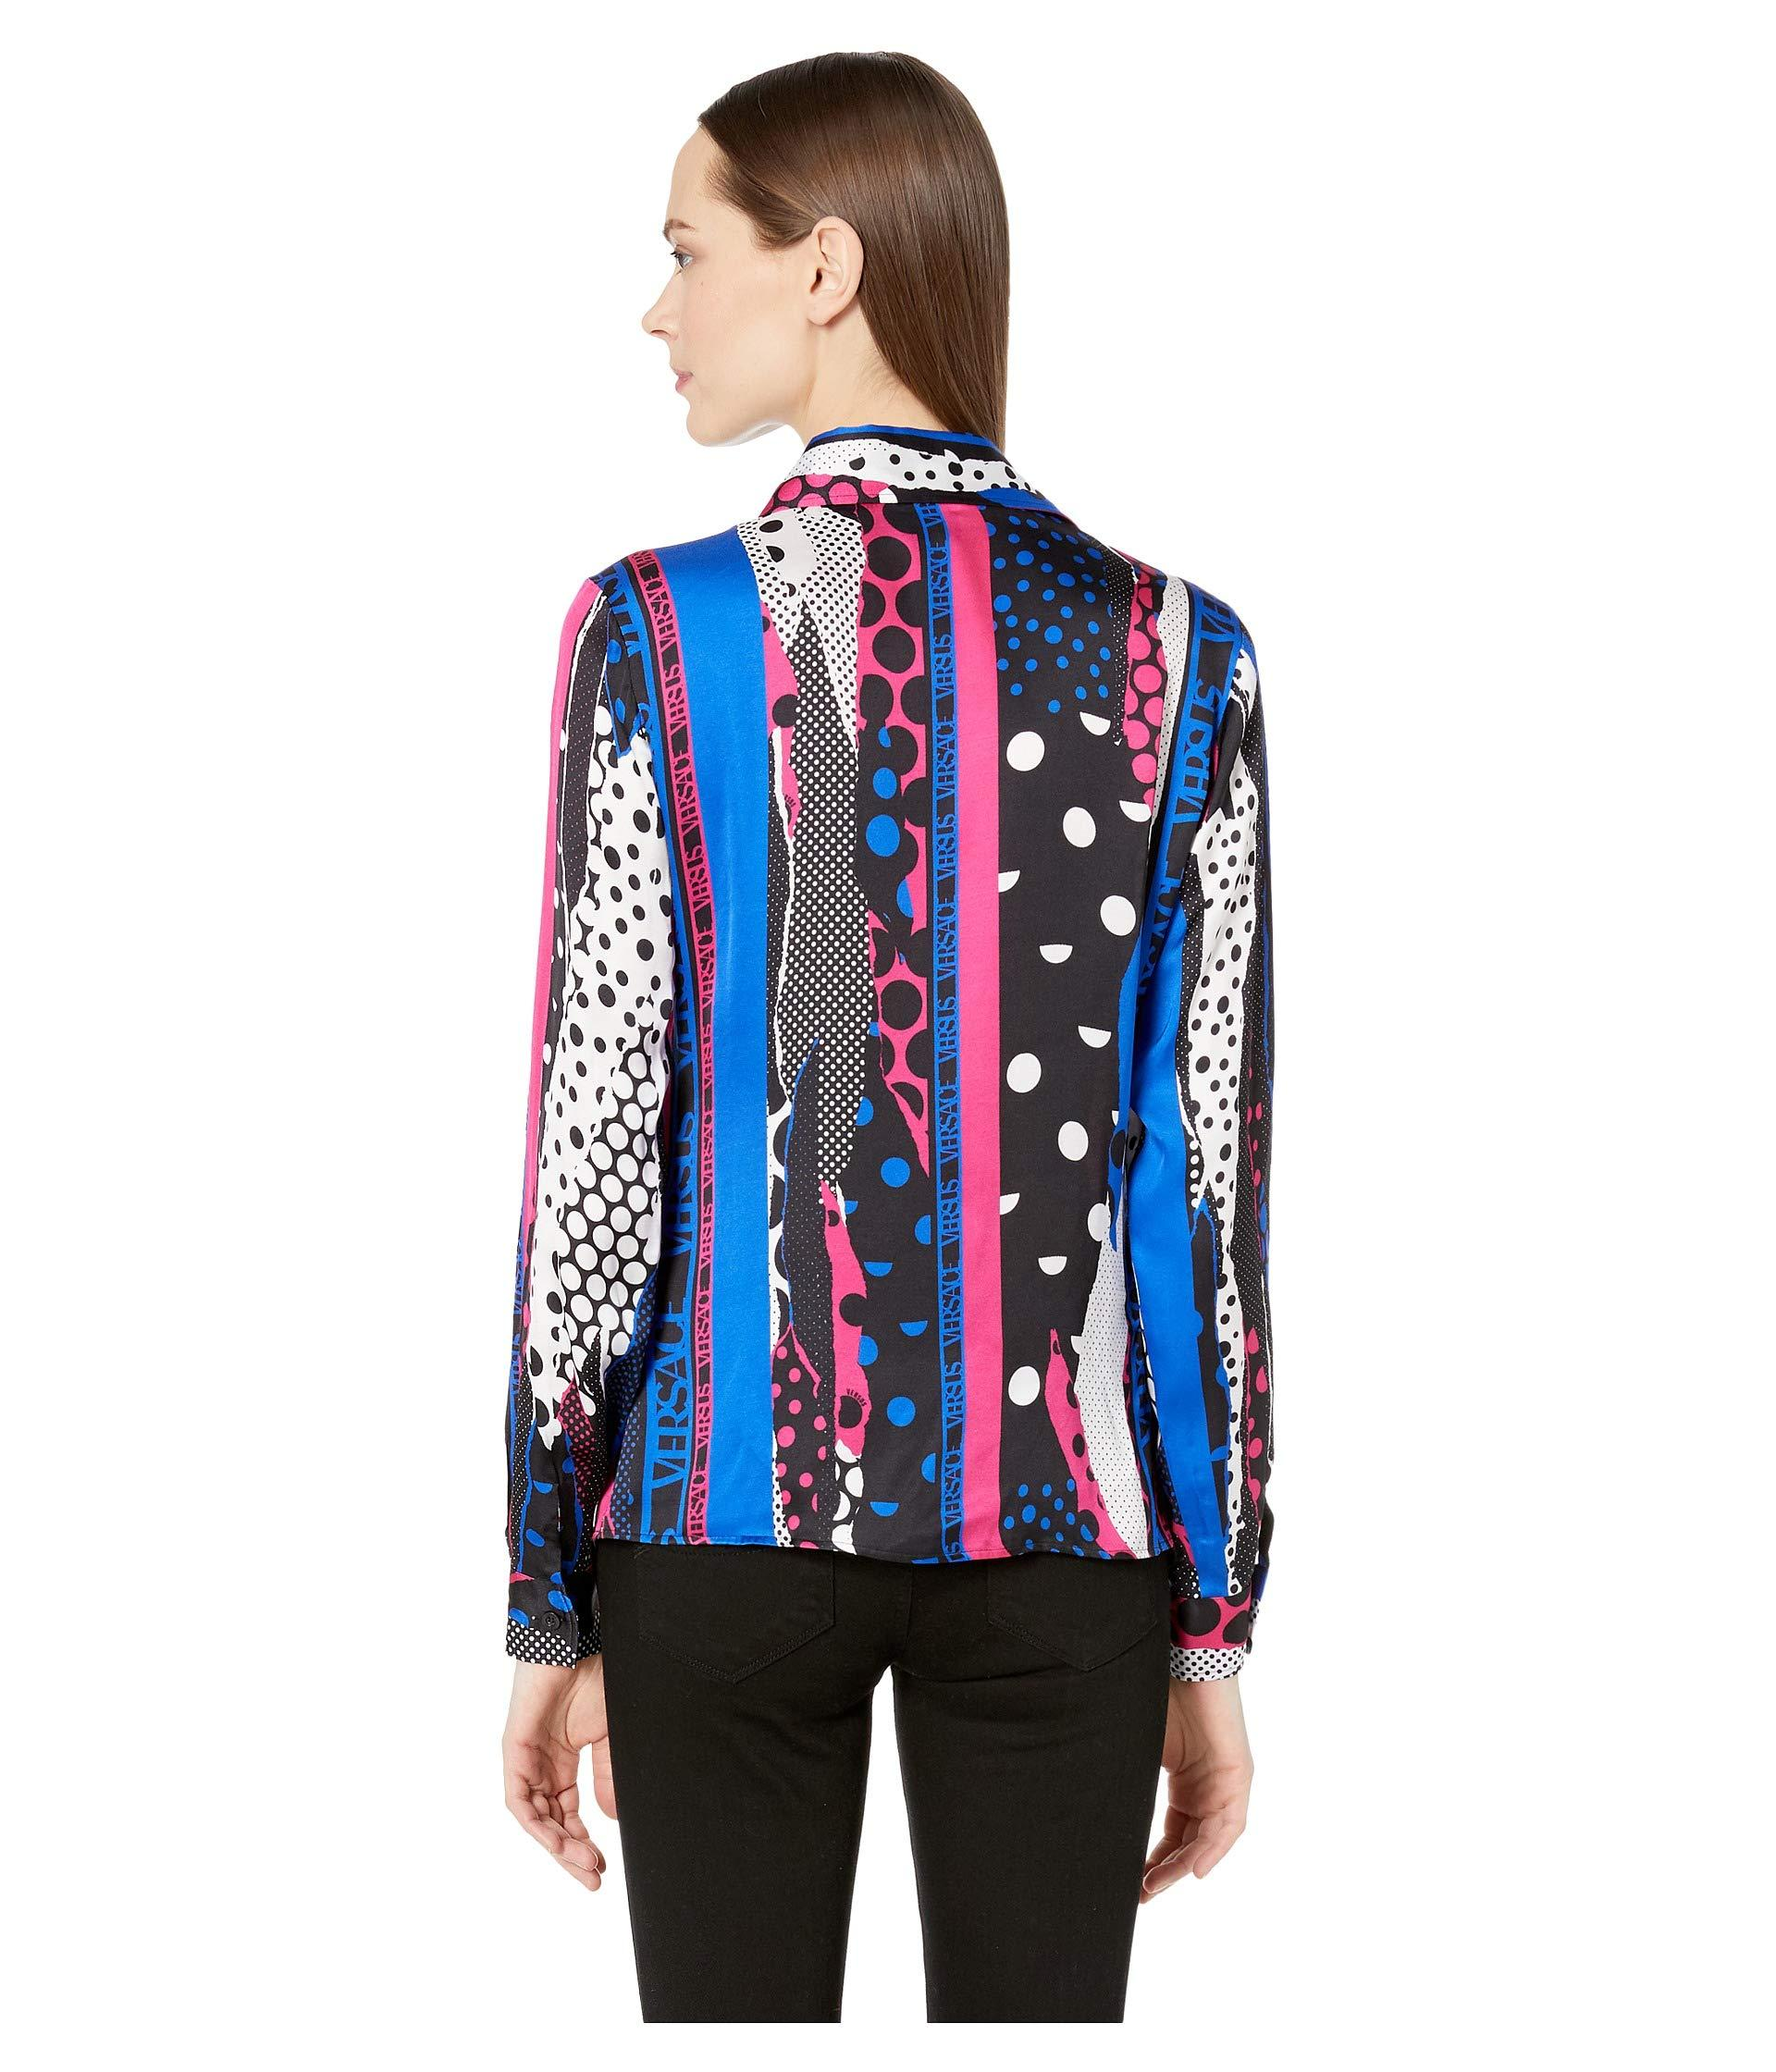 83dc5164 ... Abstract Print Shirt (multicolor) Women's Clothing - Lyst. View  fullscreen